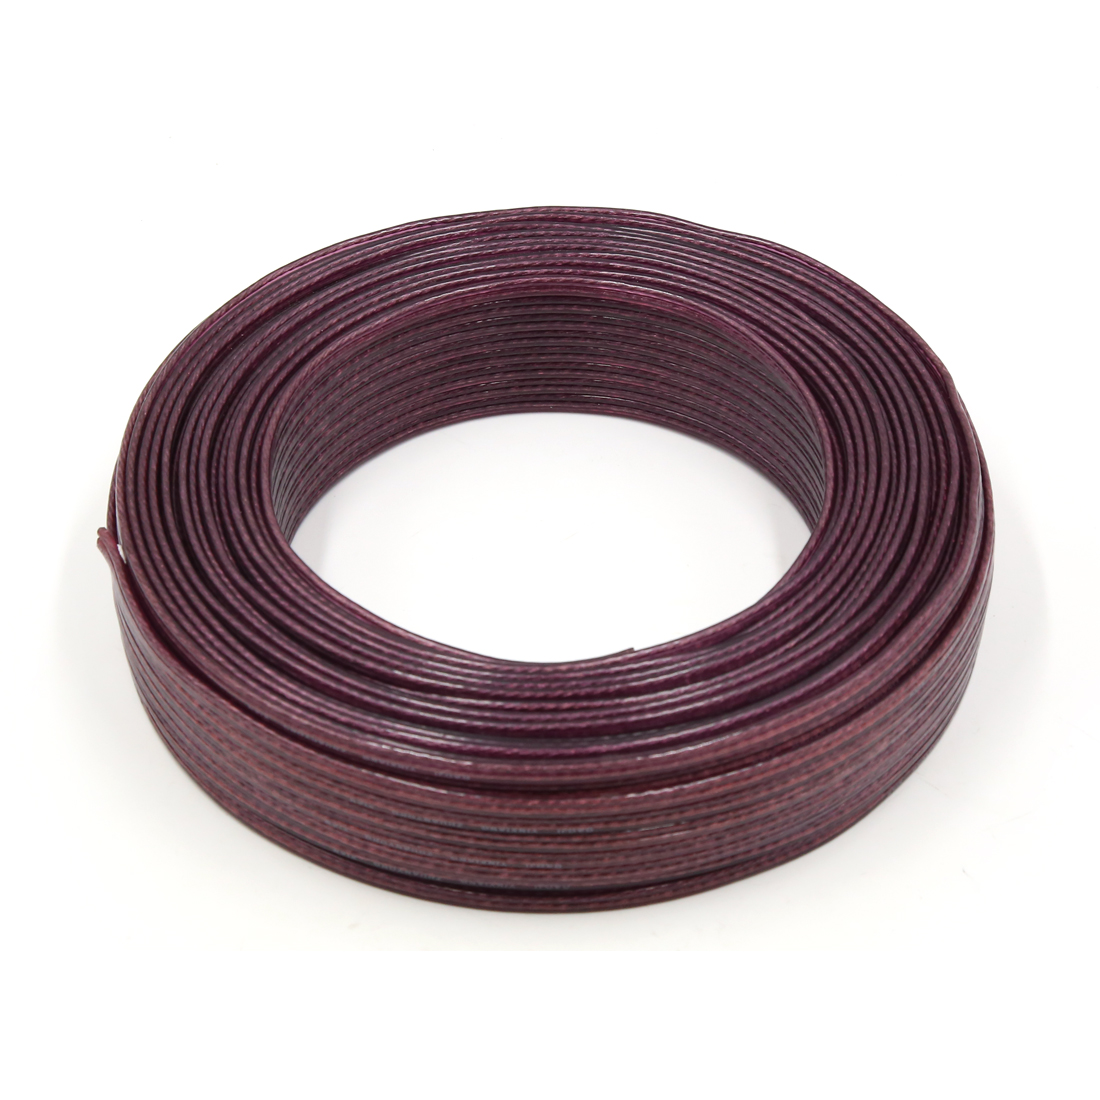 80M 262Ft 22GA 100 Type Long Red Horn Speaker Wire Cable for Car Audio